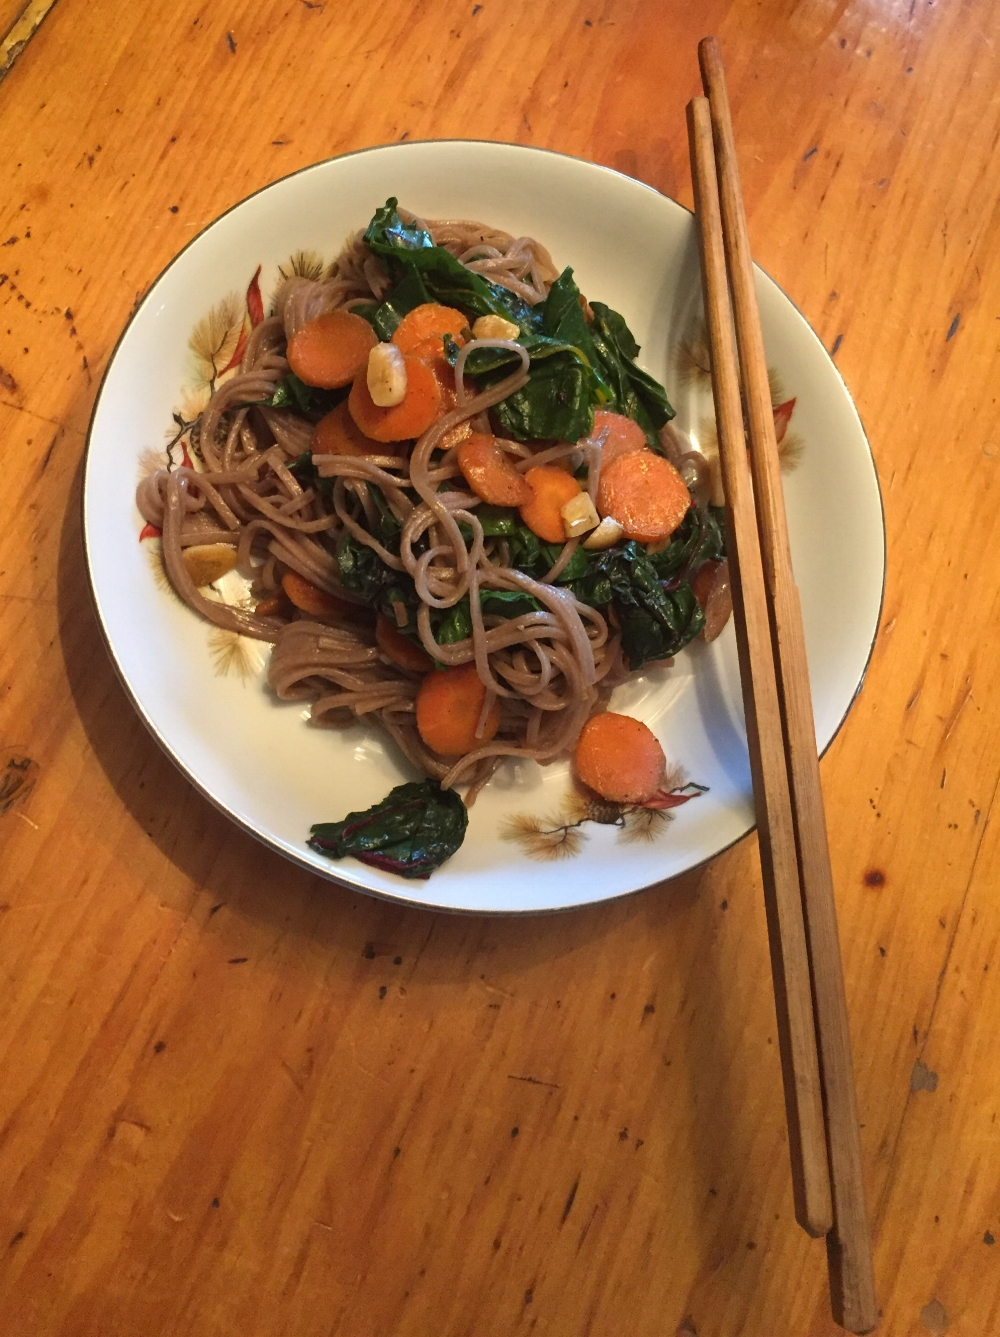 Green and Orange Garlicky Dinner - A simple meal that's feels more exotic when eaten with chopsticks.